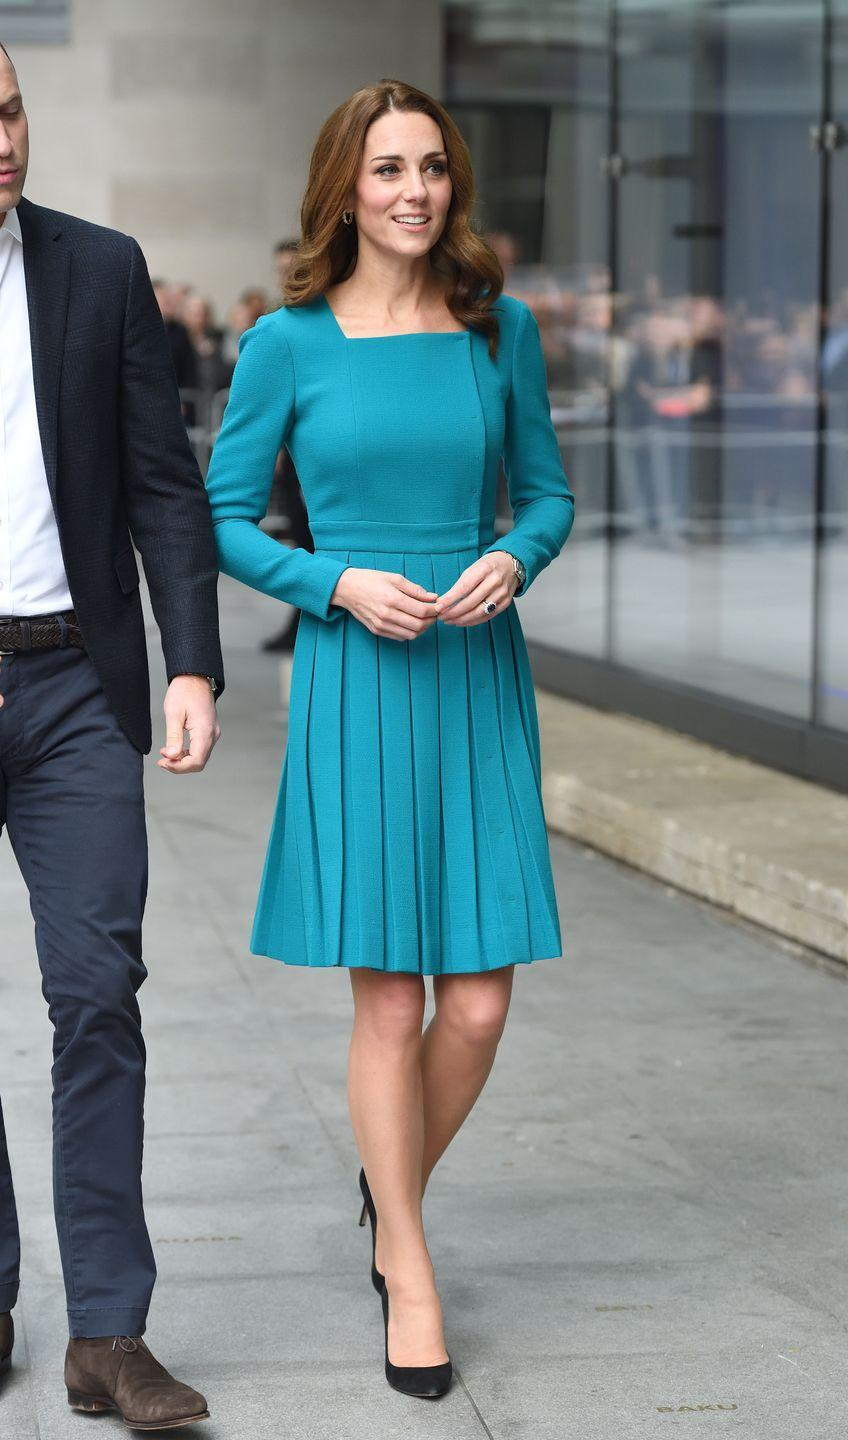 "<p>The Duke and Duchess of Cambridge visited the BBC headquarters to discuss William's Taskforce on the Prevention of Cyberbullying. Kate wore a turquoise <a href=""https://www.modaoperandi.com/emilia-wickstead"" rel=""nofollow noopener"" target=""_blank"" data-ylk=""slk:Emilia Wickstead"" class=""link rapid-noclick-resp"">Emilia Wickstead</a> dress, recycled from an appearance in 2014, paired with <a href=""https://www.lkbennett.com/Occasionwear/Occasion-Shoes"" rel=""nofollow noopener"" target=""_blank"" data-ylk=""slk:black heels from LK Bennet"" class=""link rapid-noclick-resp"">black heels from LK Bennet</a> for the visit.</p>"